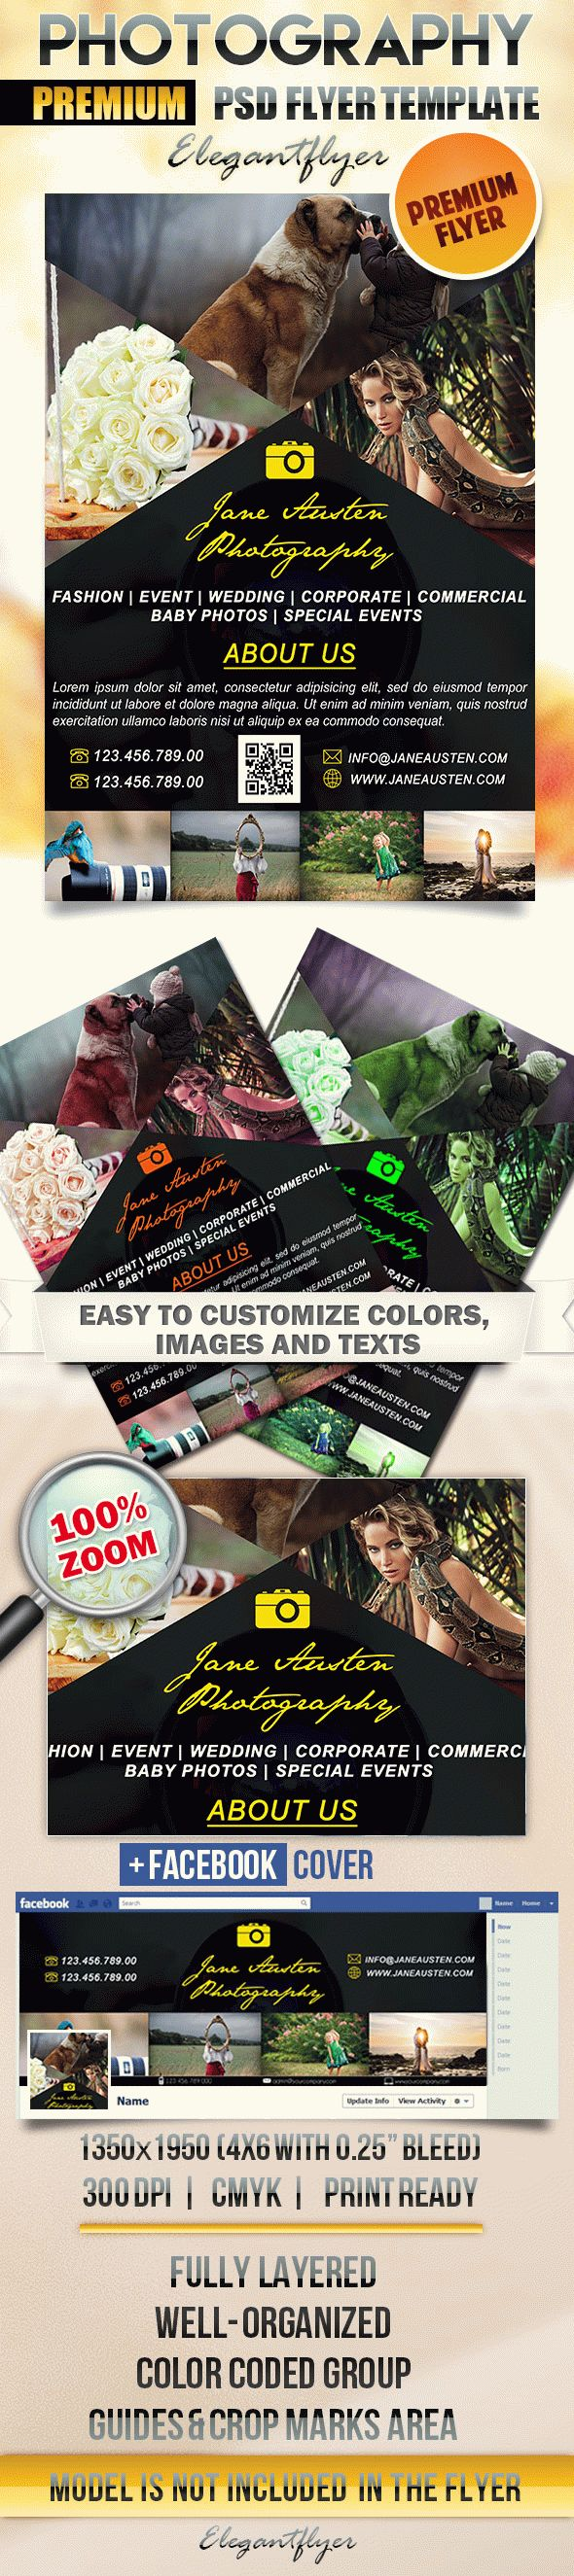 Template Poster for Photography Theme